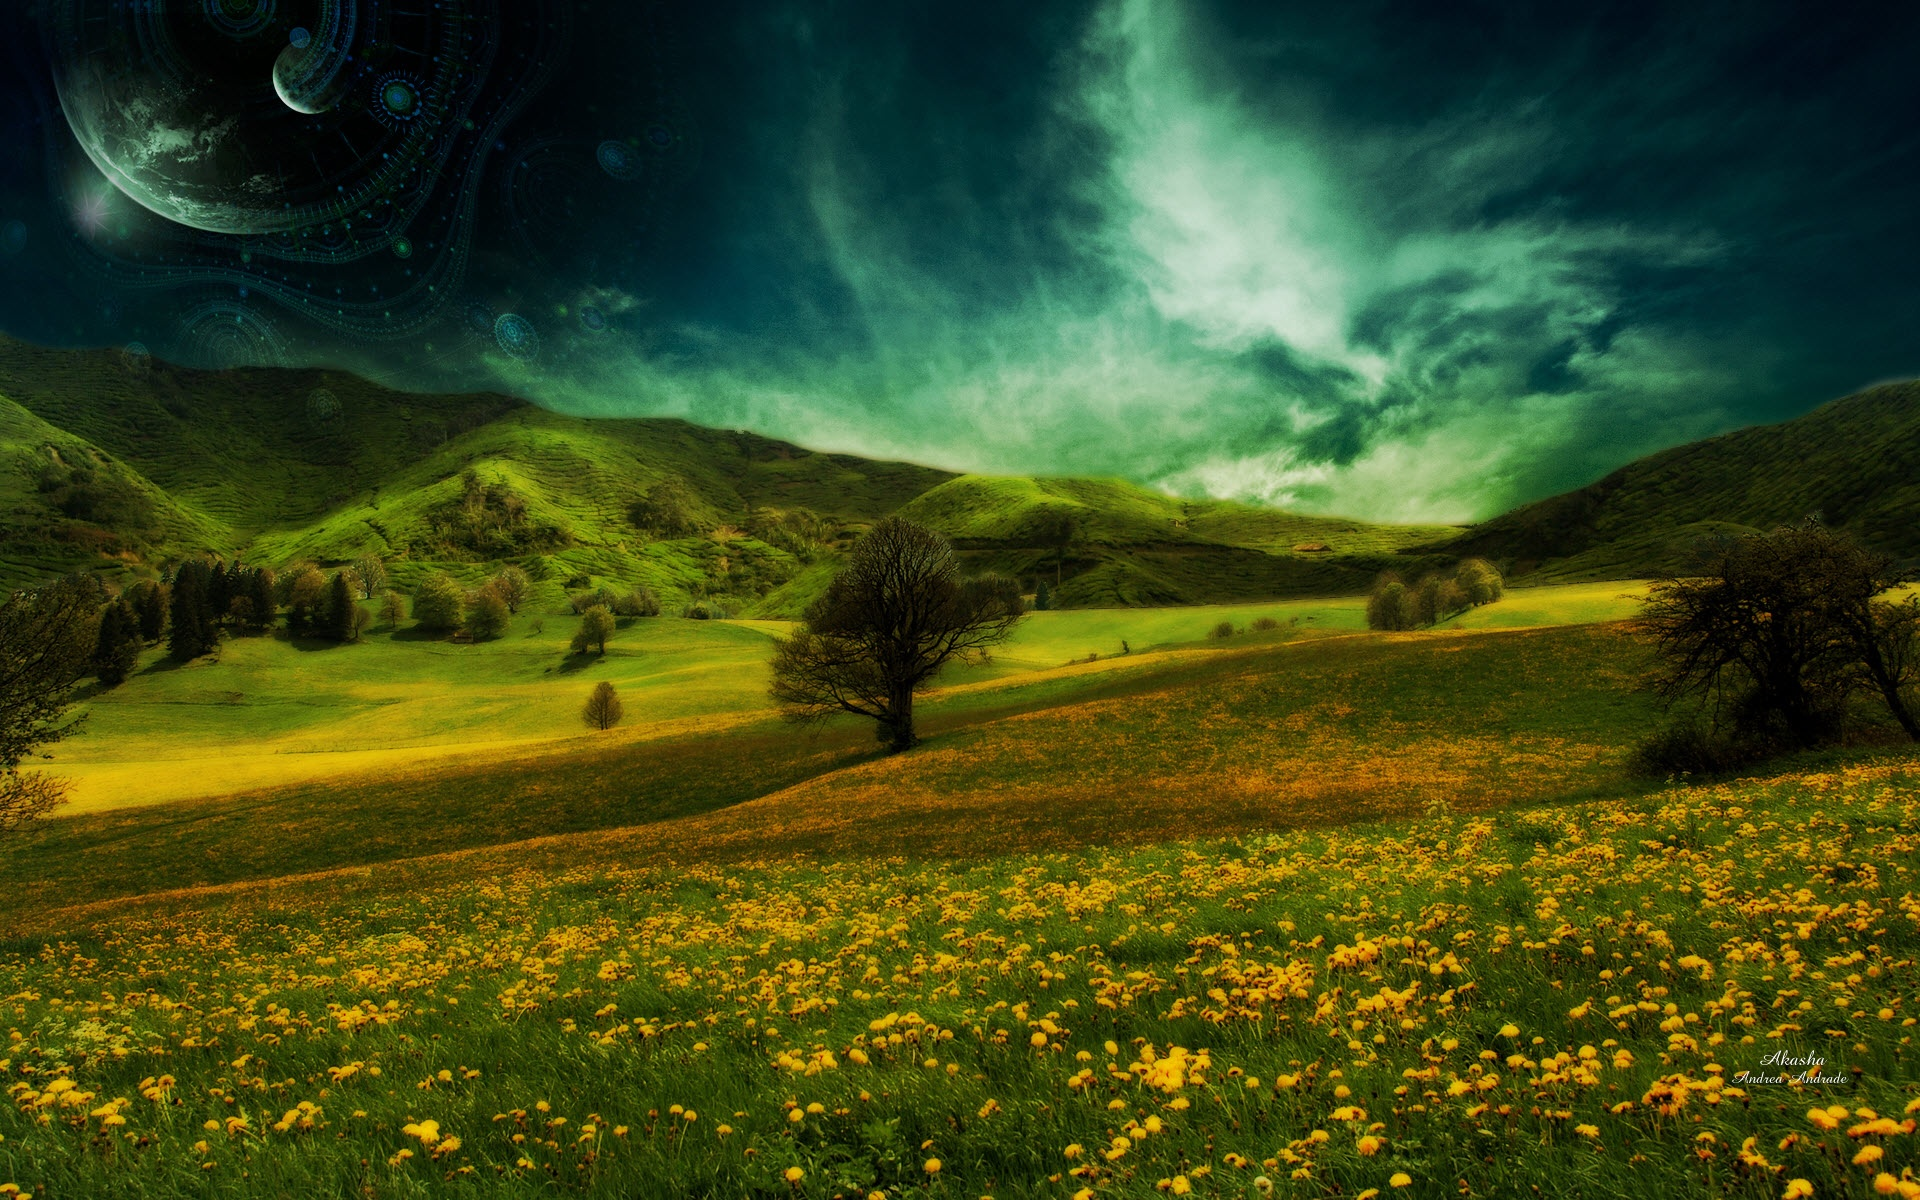 High-Definition-Photography-dreamscape-x-x-dreamy-landscape-wallpaper-wp4407900